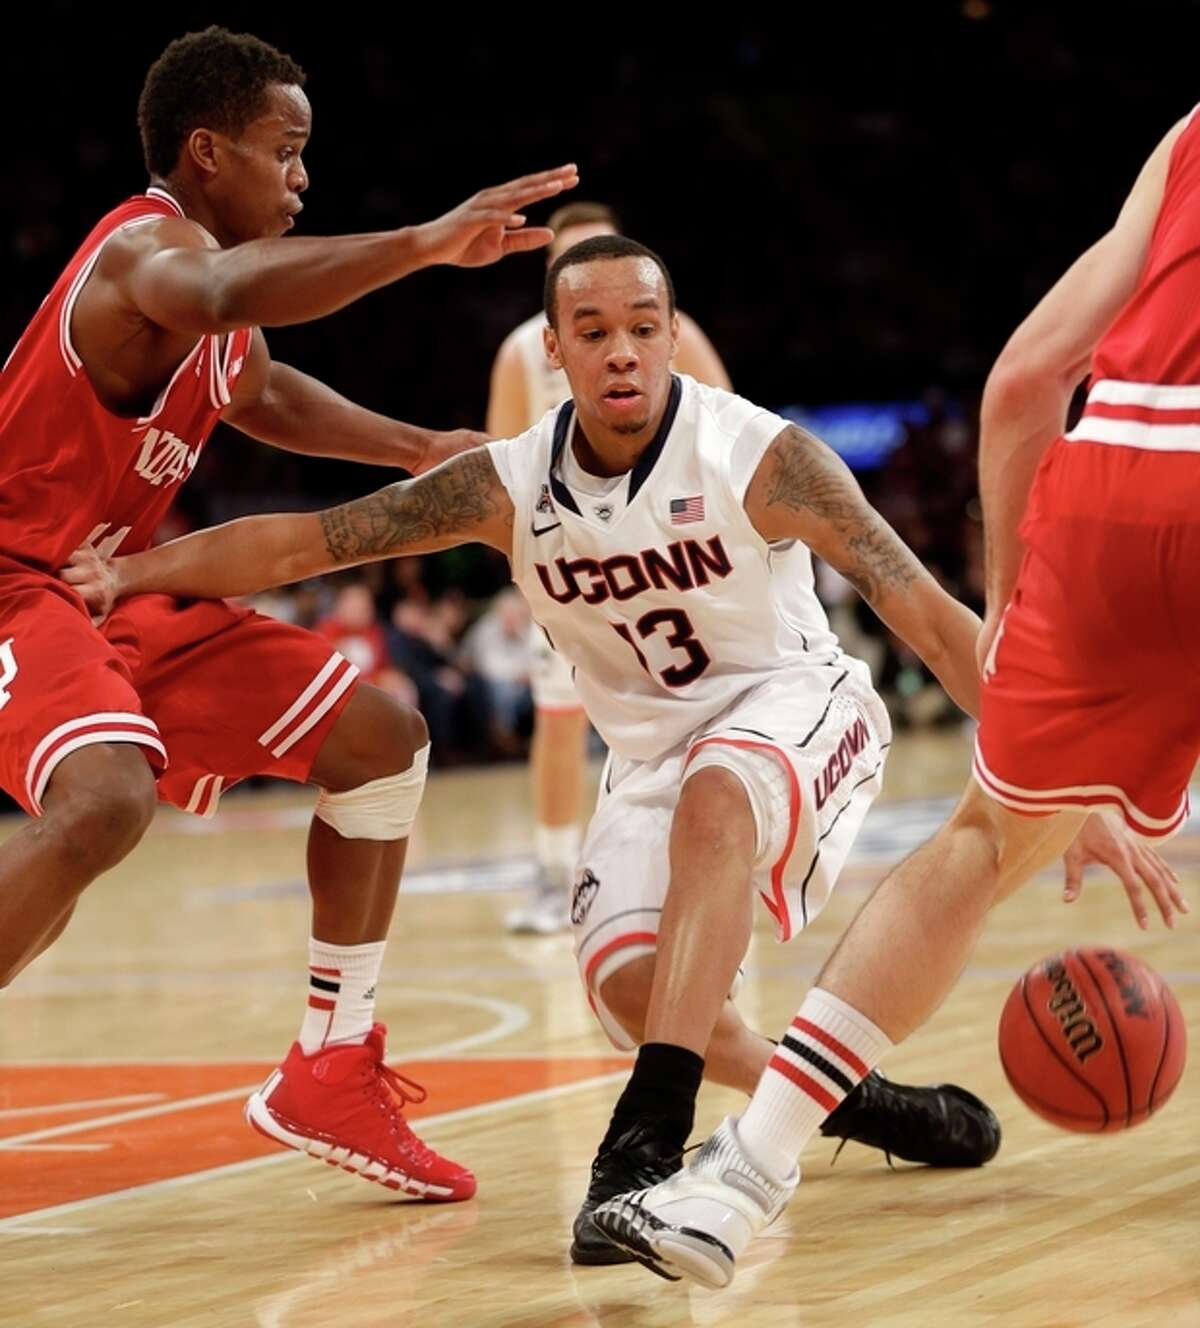 Connecticut's Shabazz Napier dribbles through traffic during the first half of an NCAA college basketball game against Indiana, Friday, Nov. 22, 2013, in New York. (AP Photo/Seth Wenig)